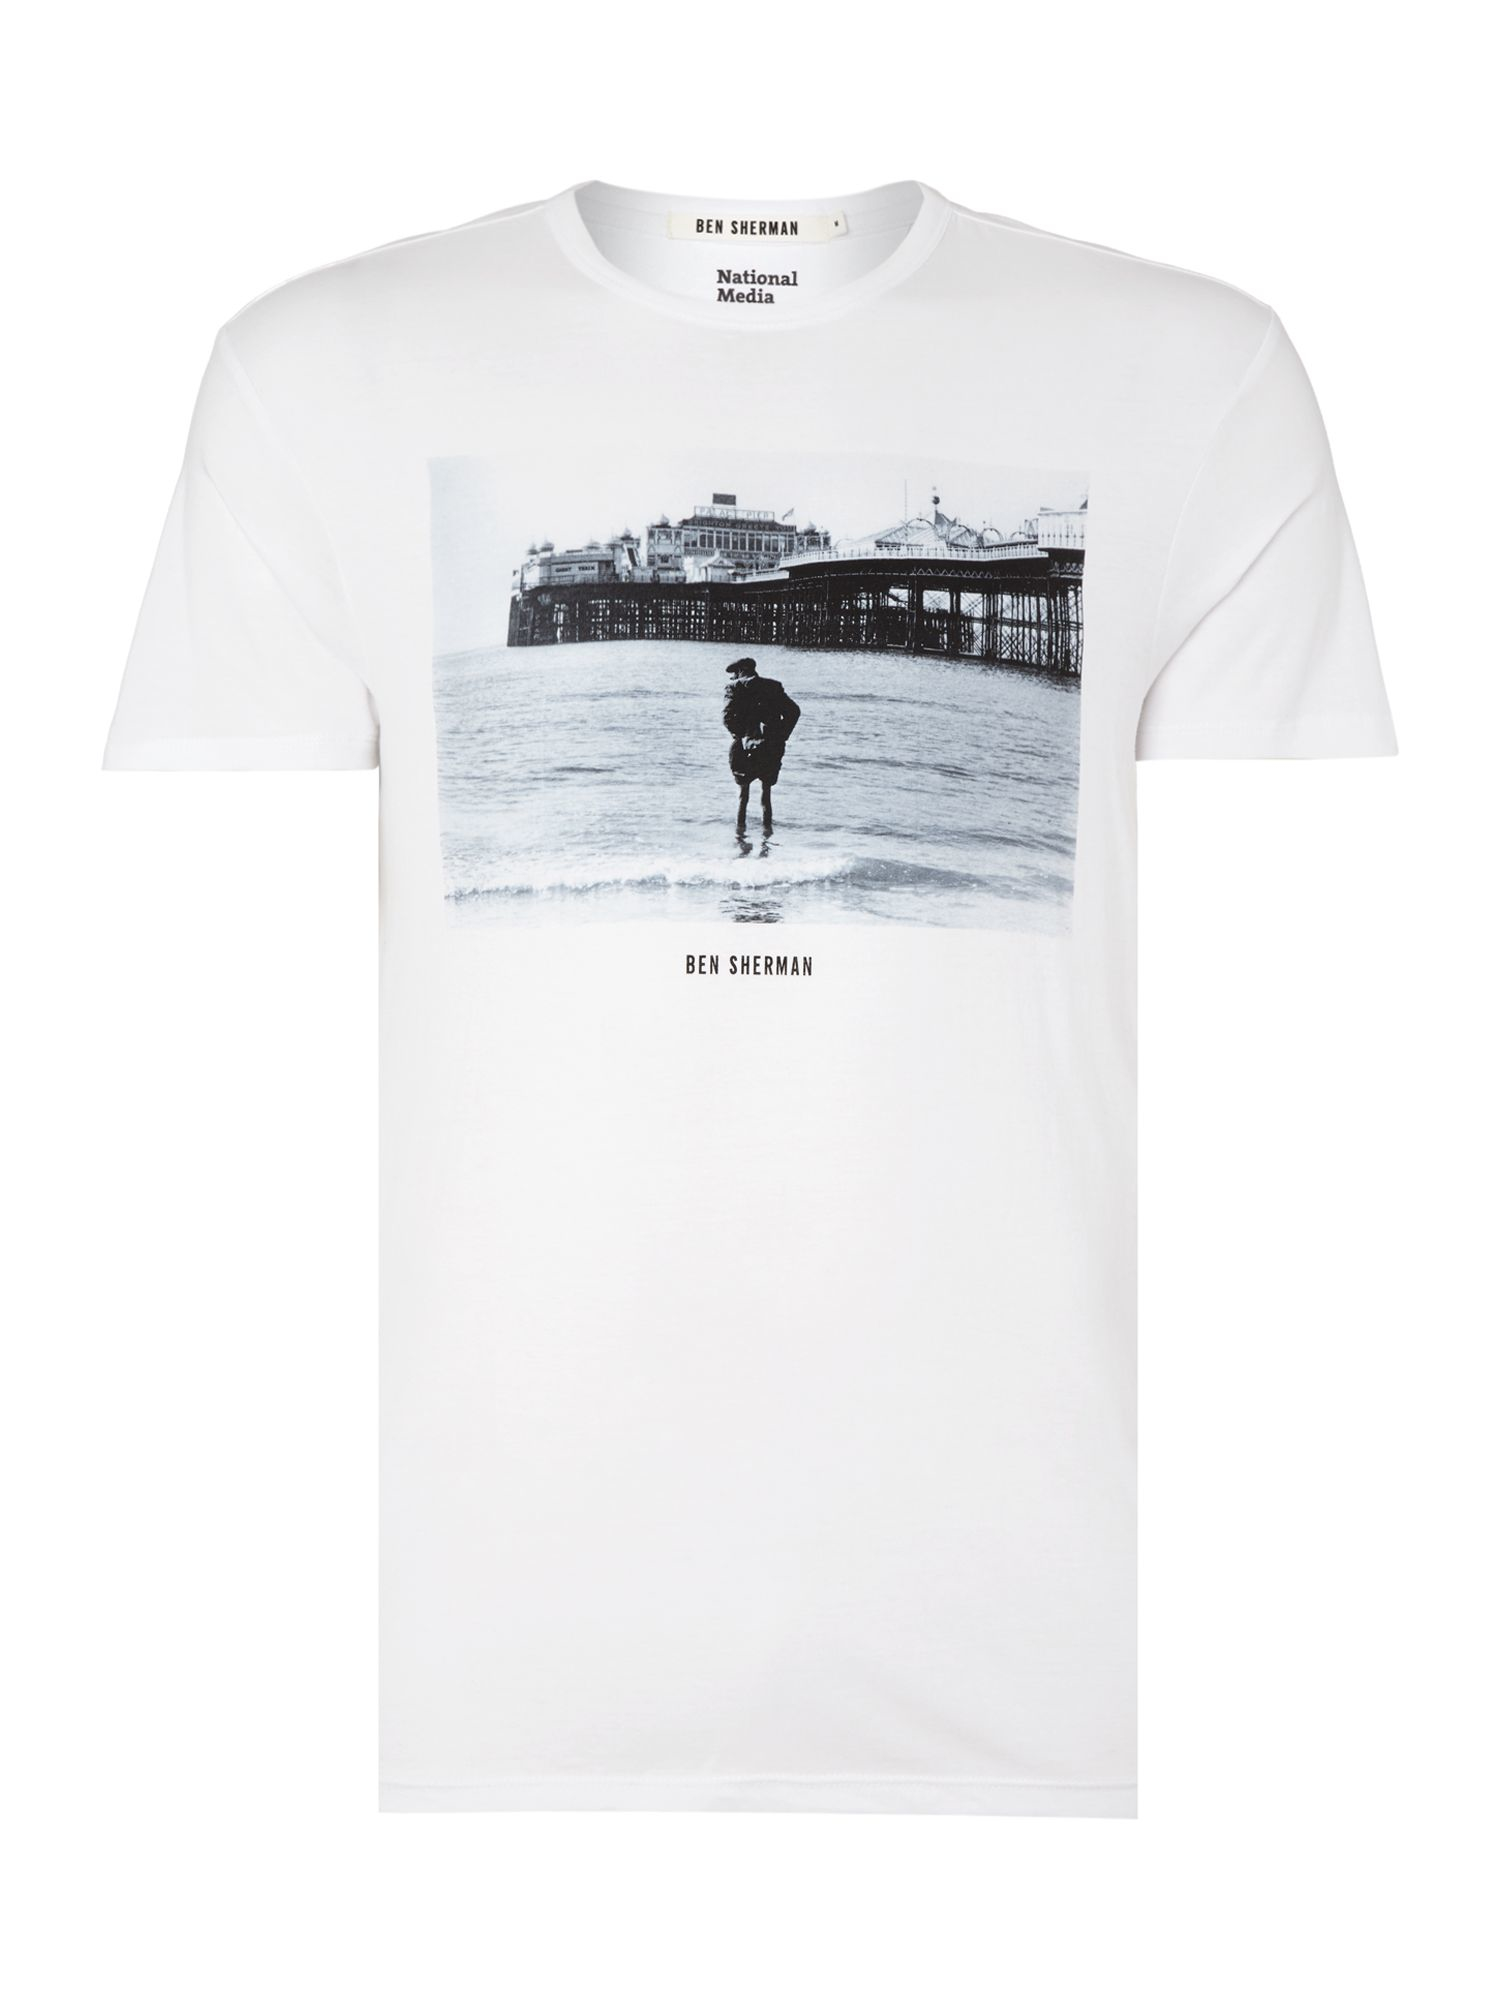 Ben Sherman Tony Ray Jones Brighton T Shirt In White For